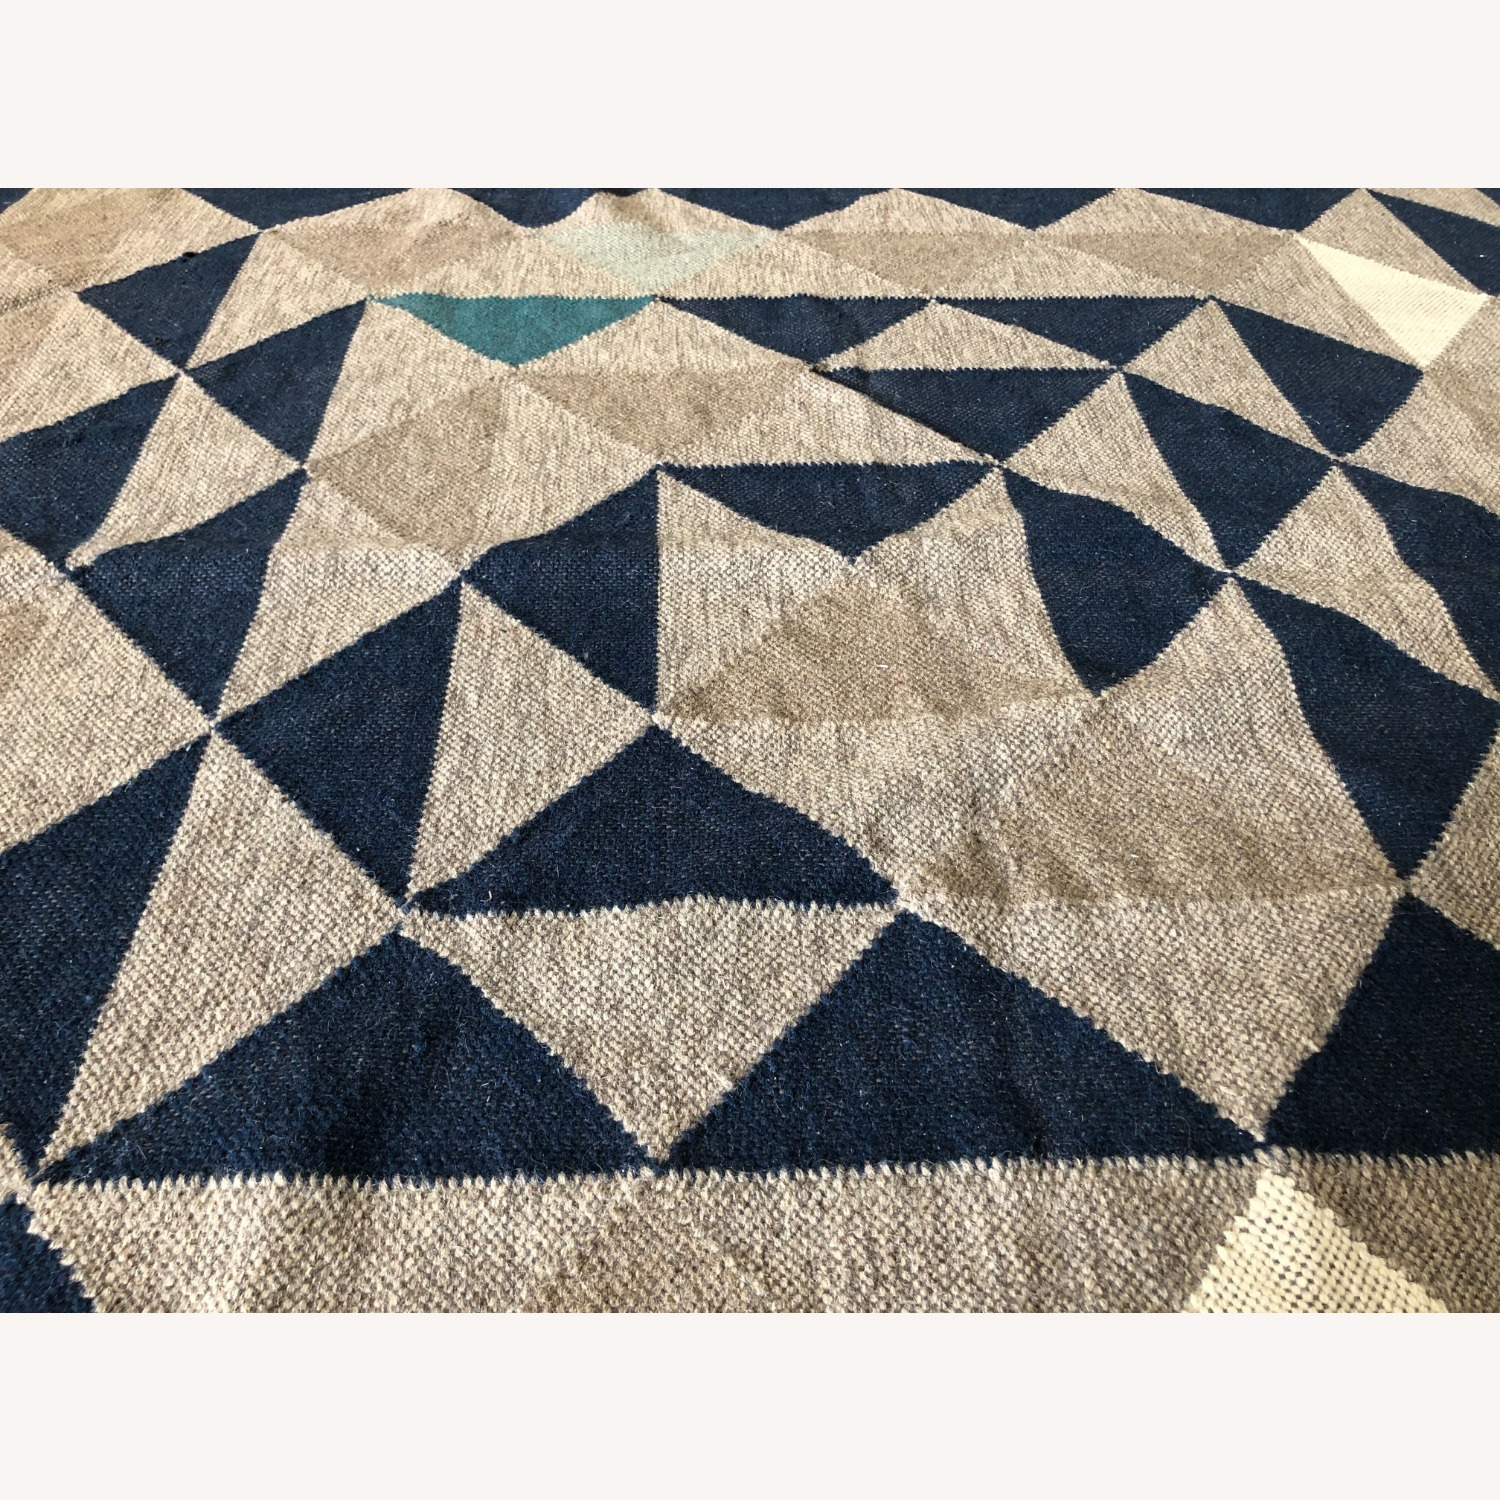 West Elm Carpet - image-3